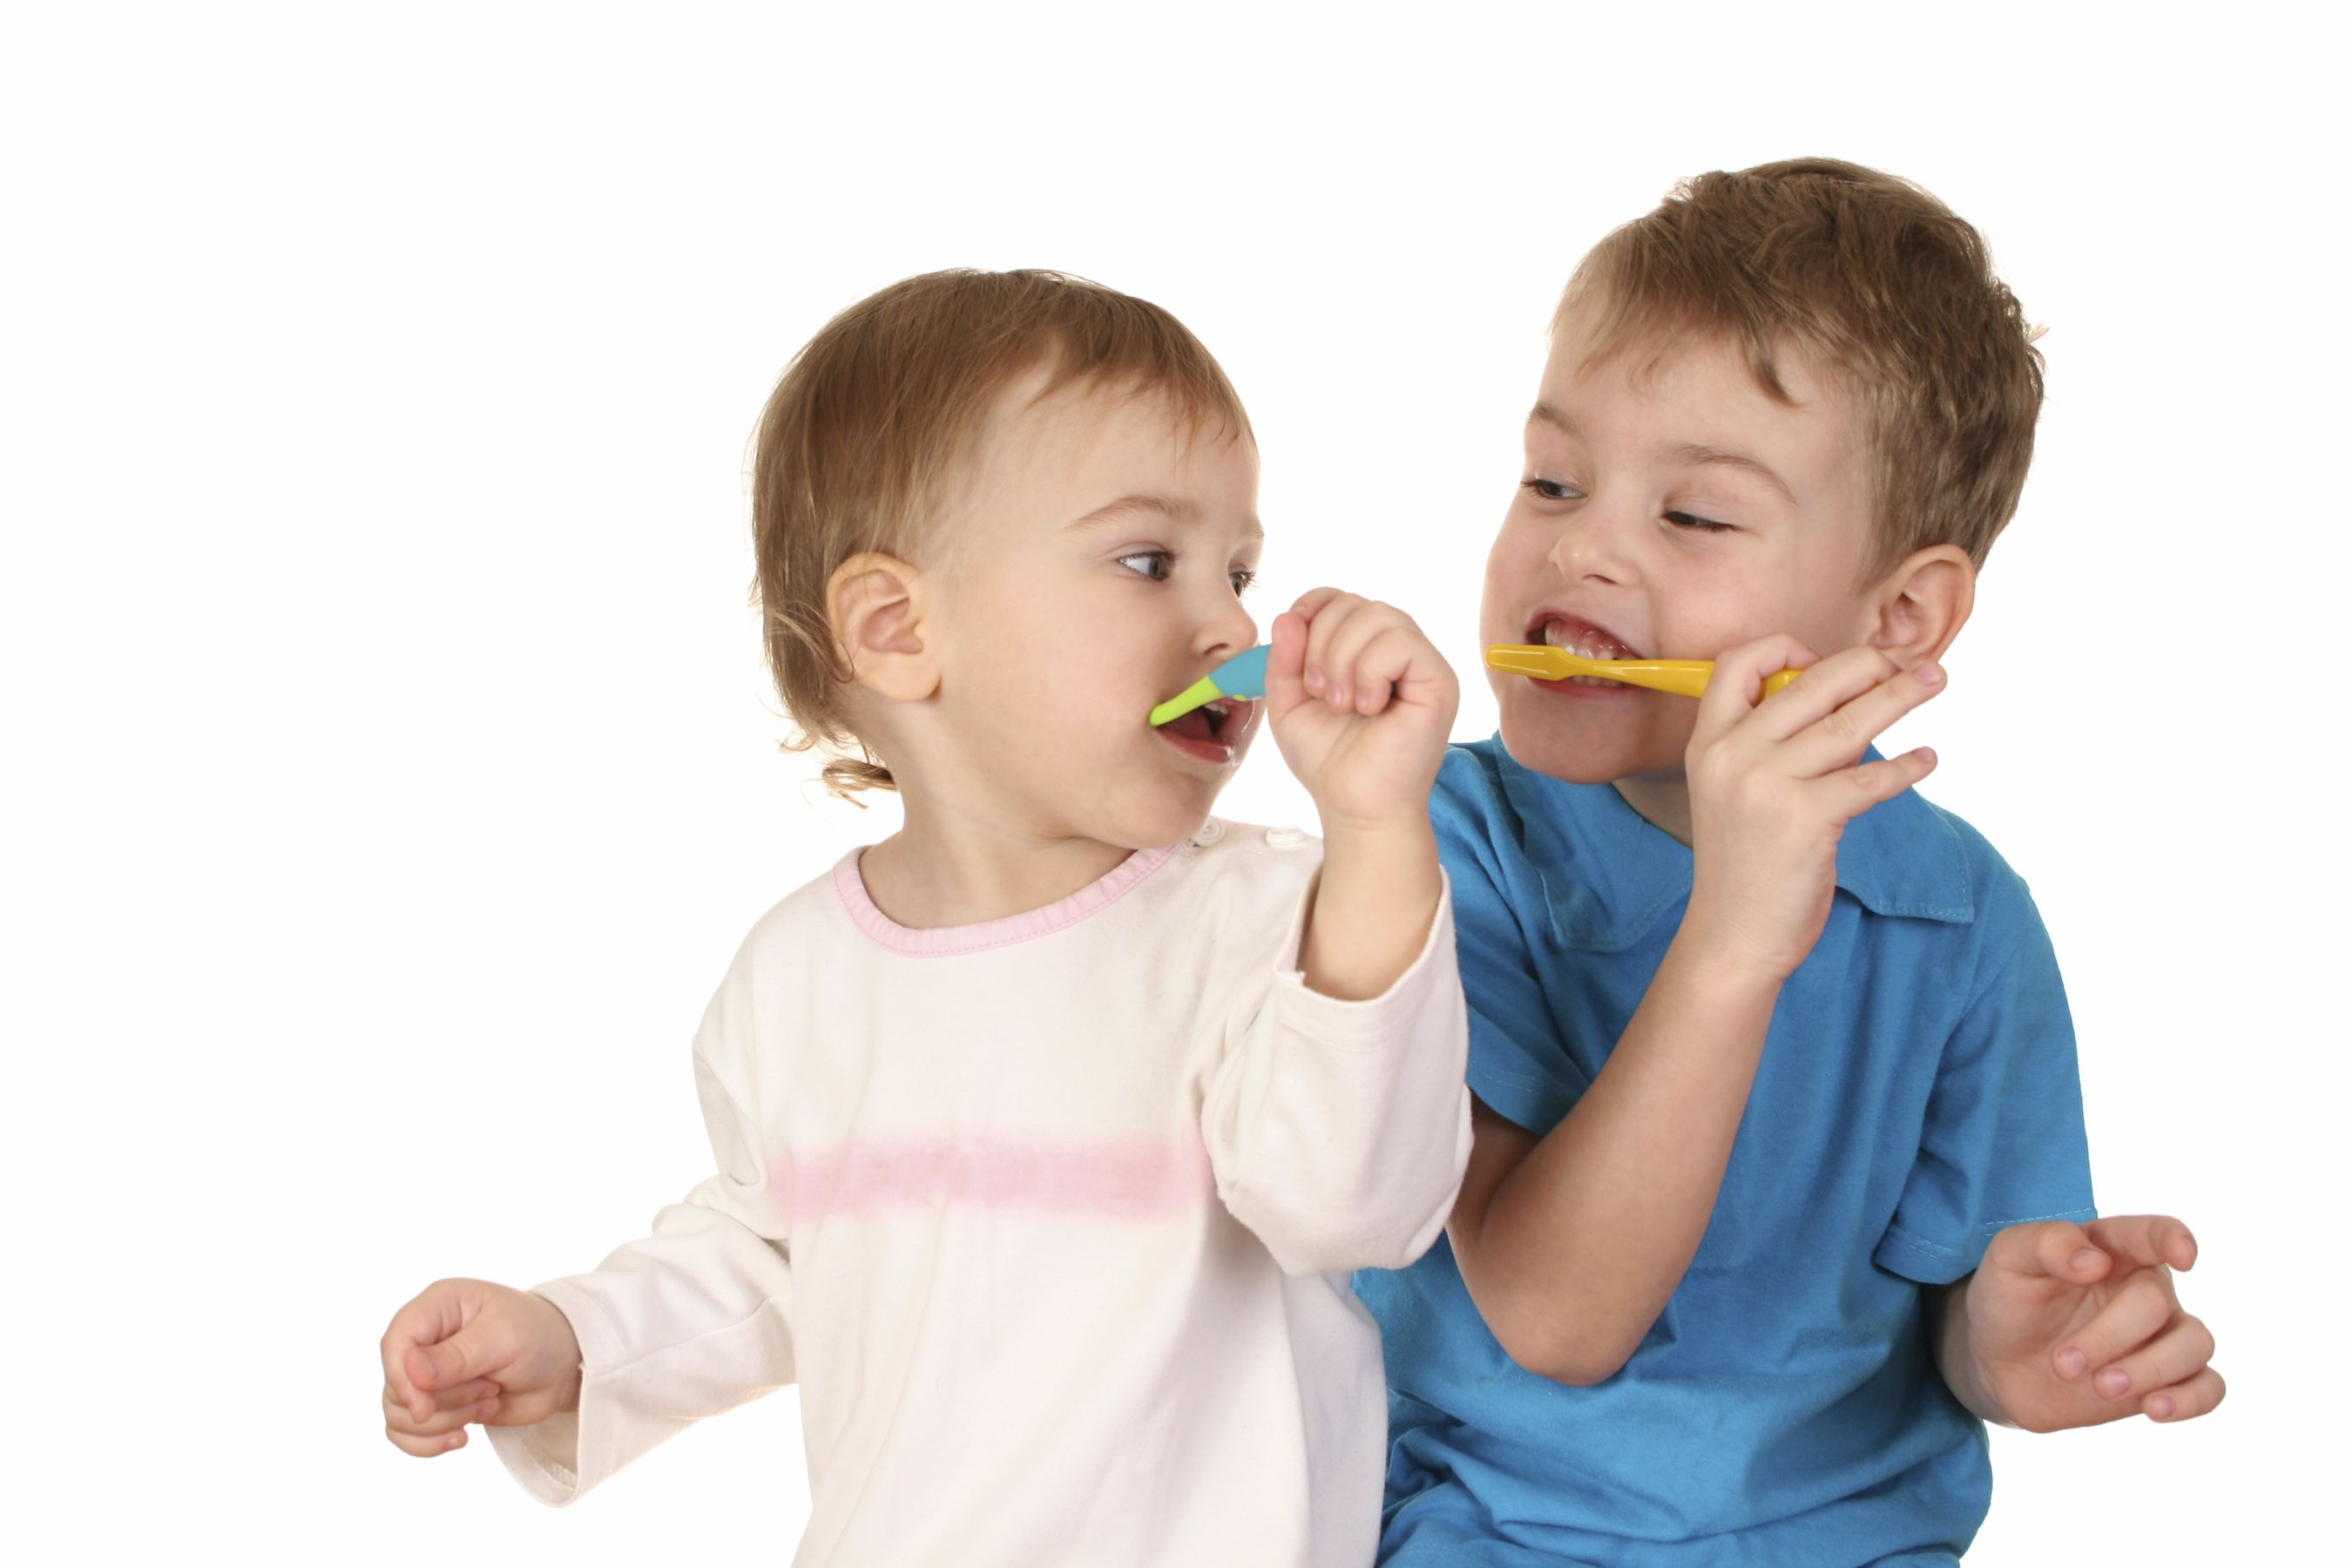 Dental crowns have been around in dentistry for quite a